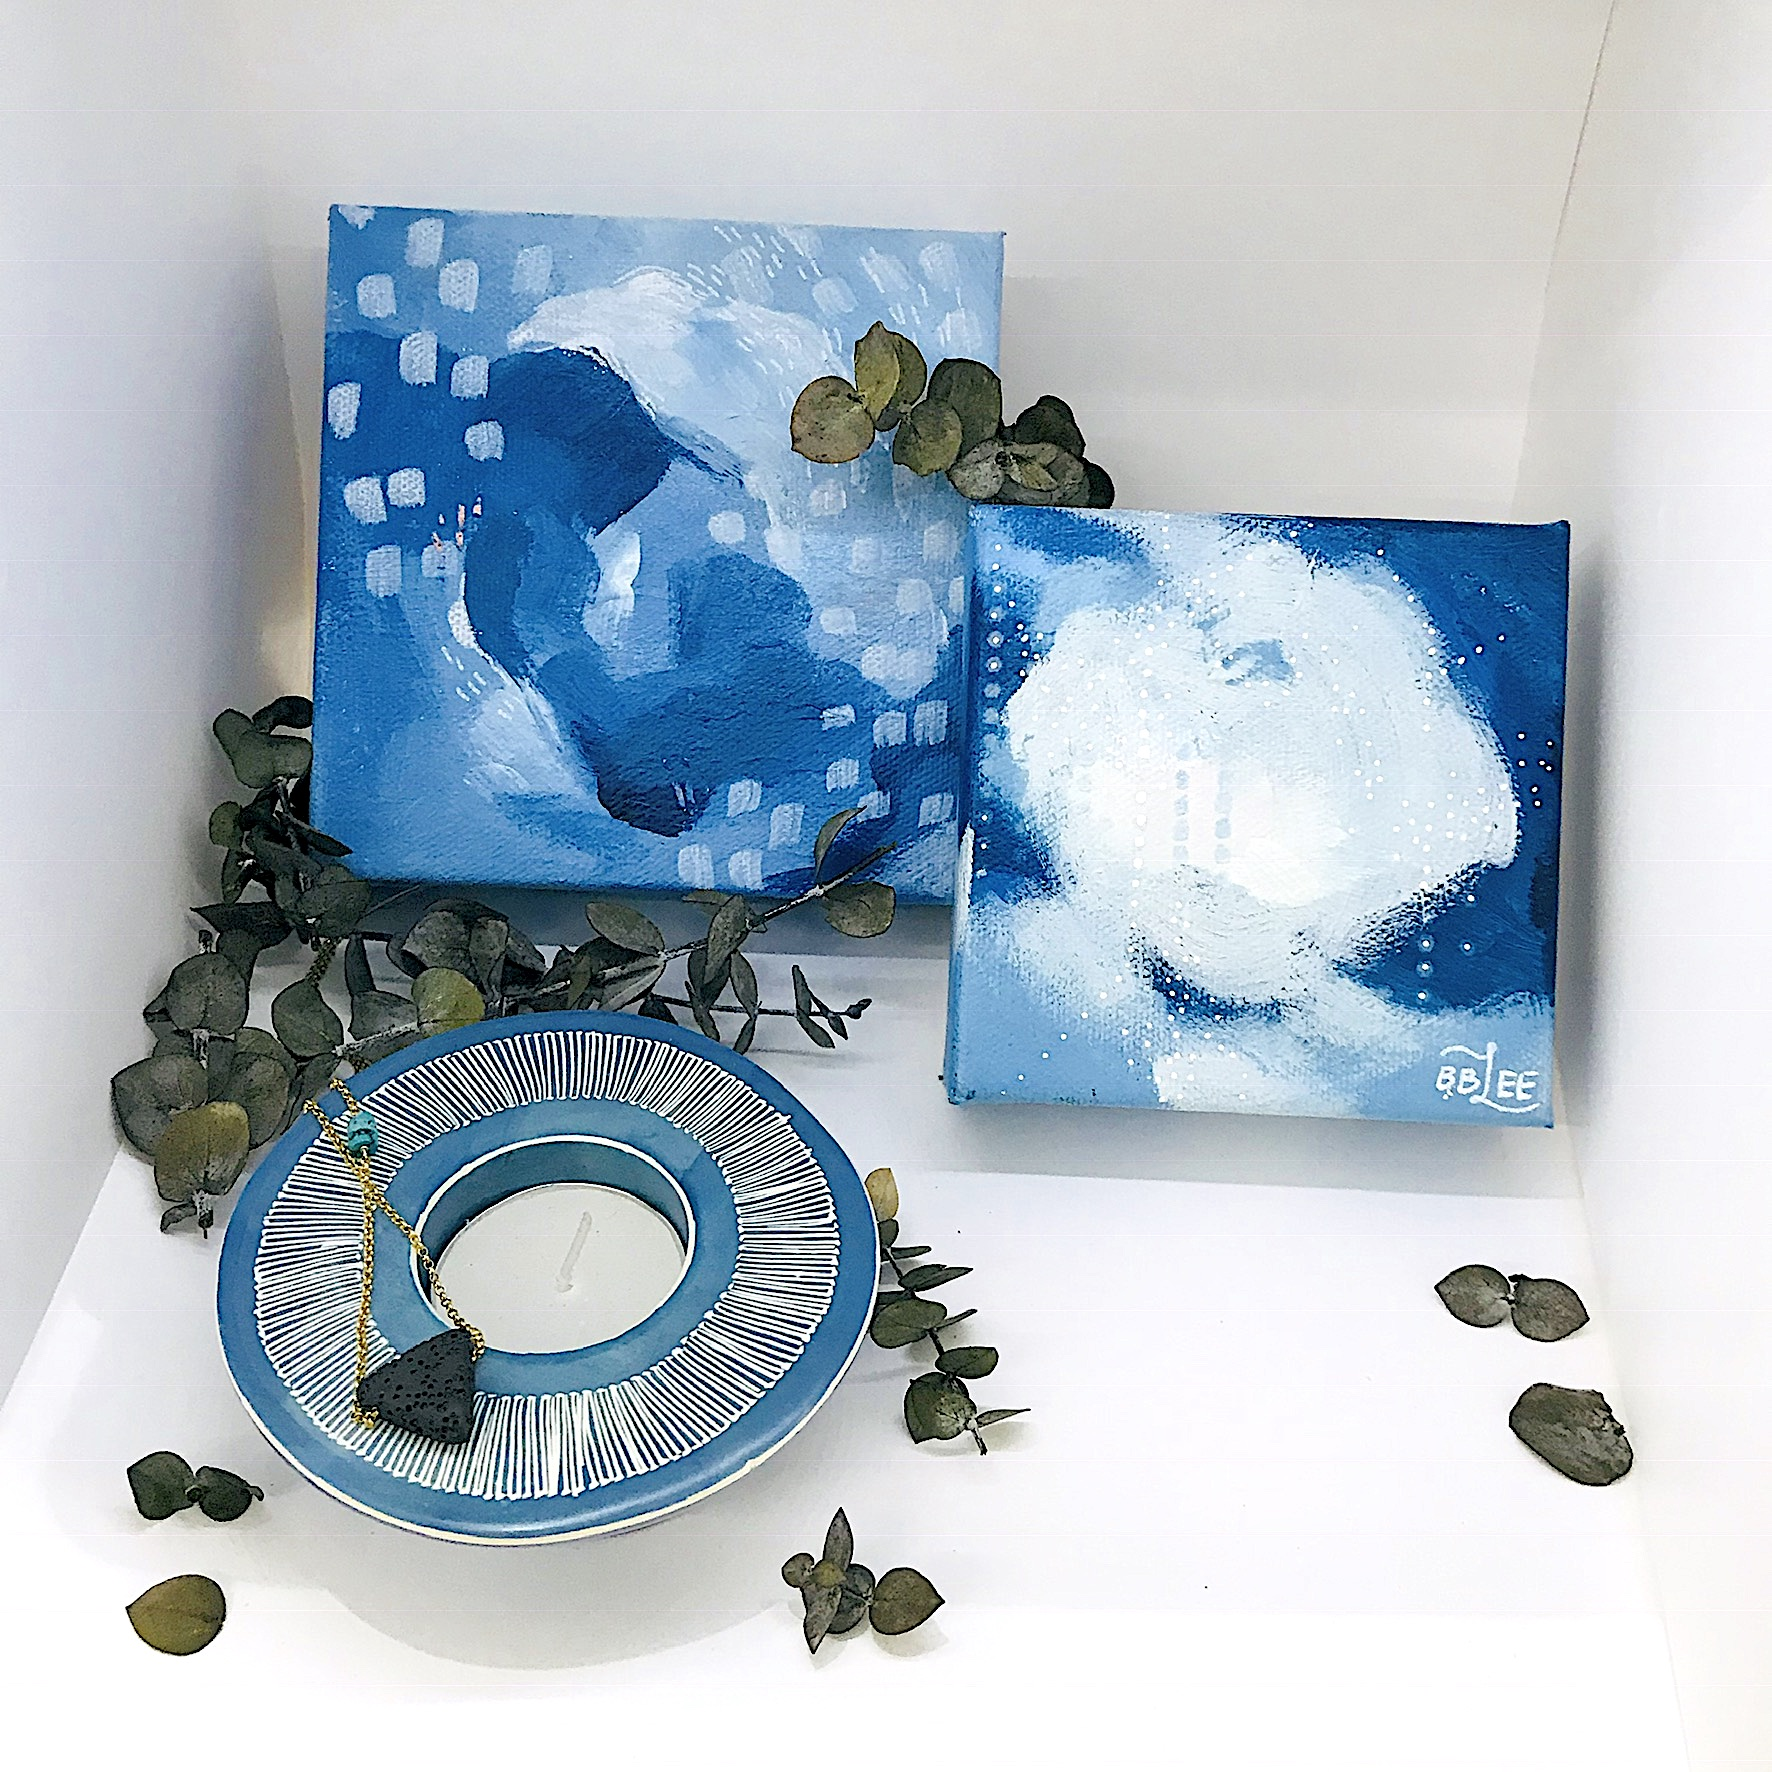 Gifts for your Sister - Show your sister some love with some local art from Becca Bastian Lee and a Soapstone candle holder.